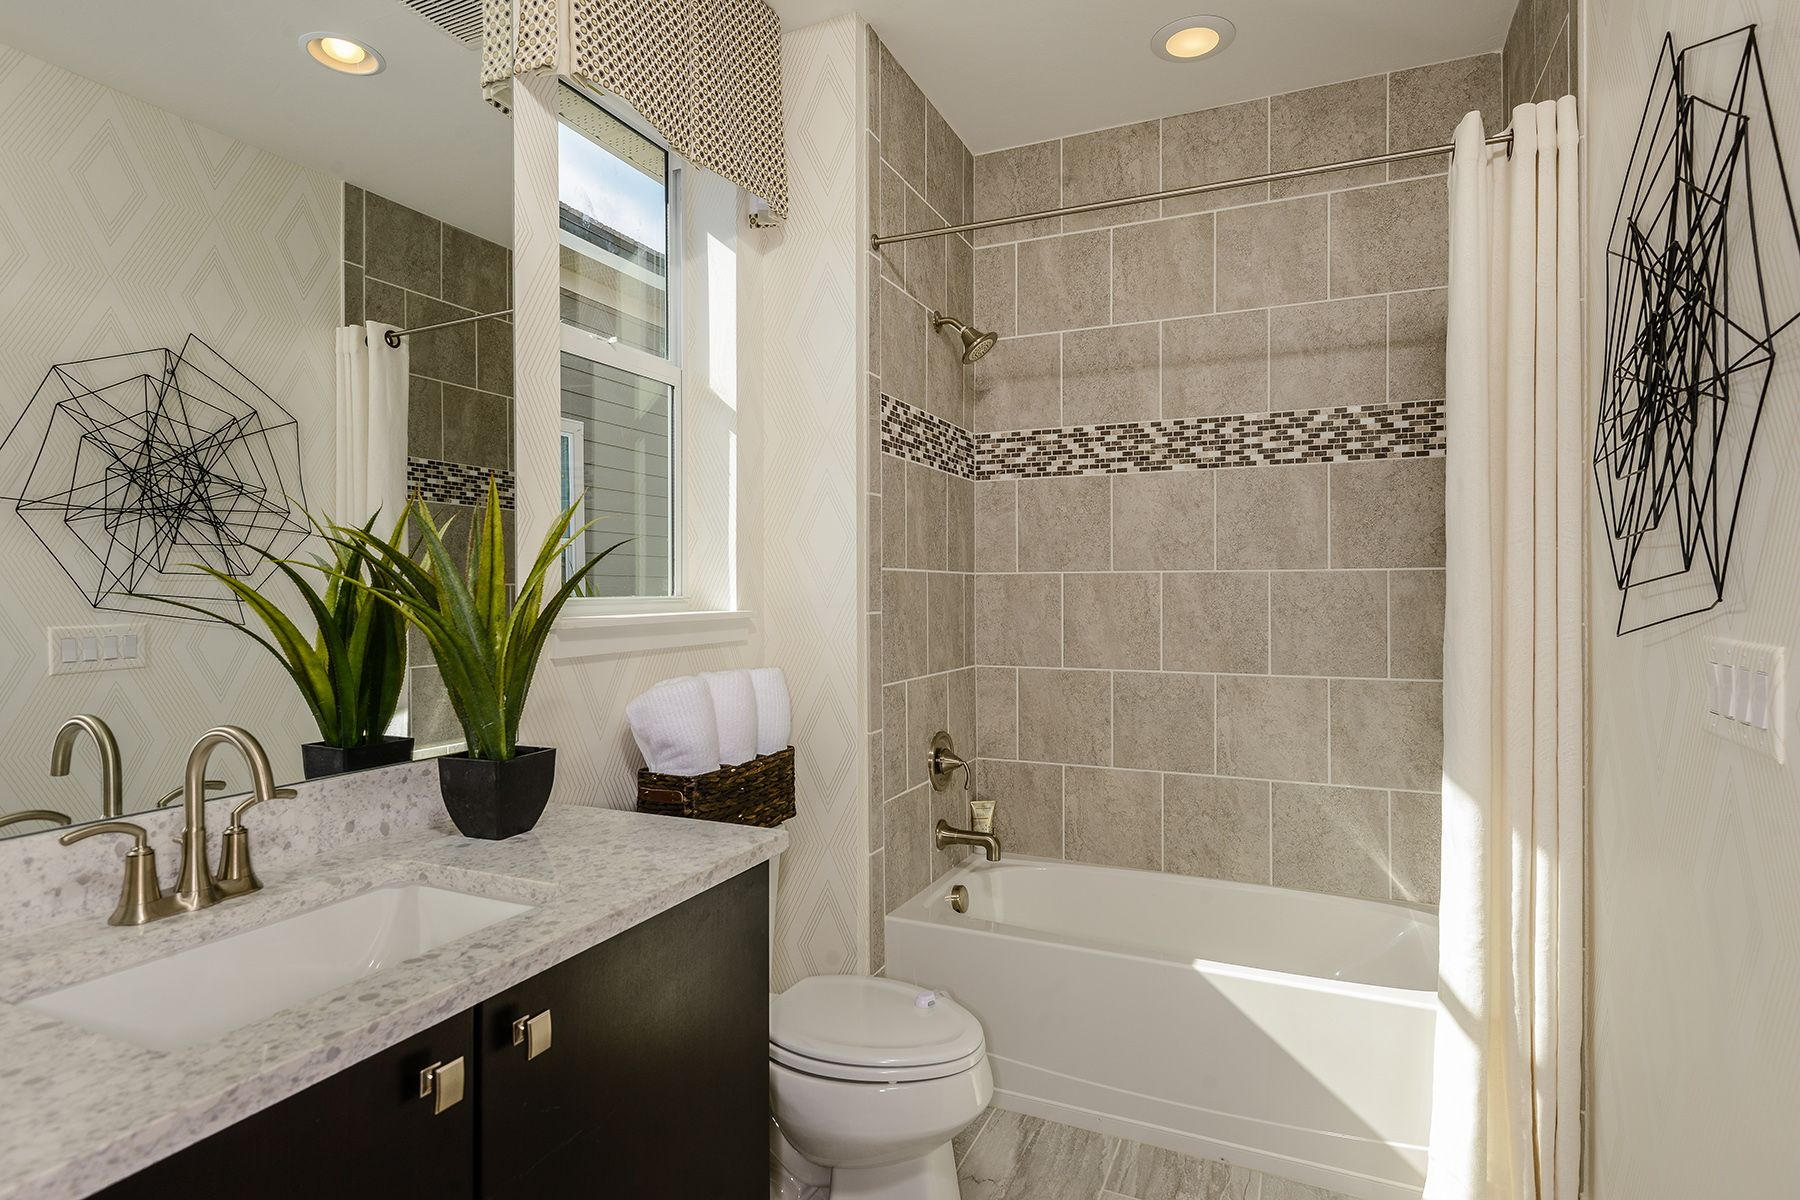 Bathroom featured in the Commodore By Mattamy Homes in Naples, FL